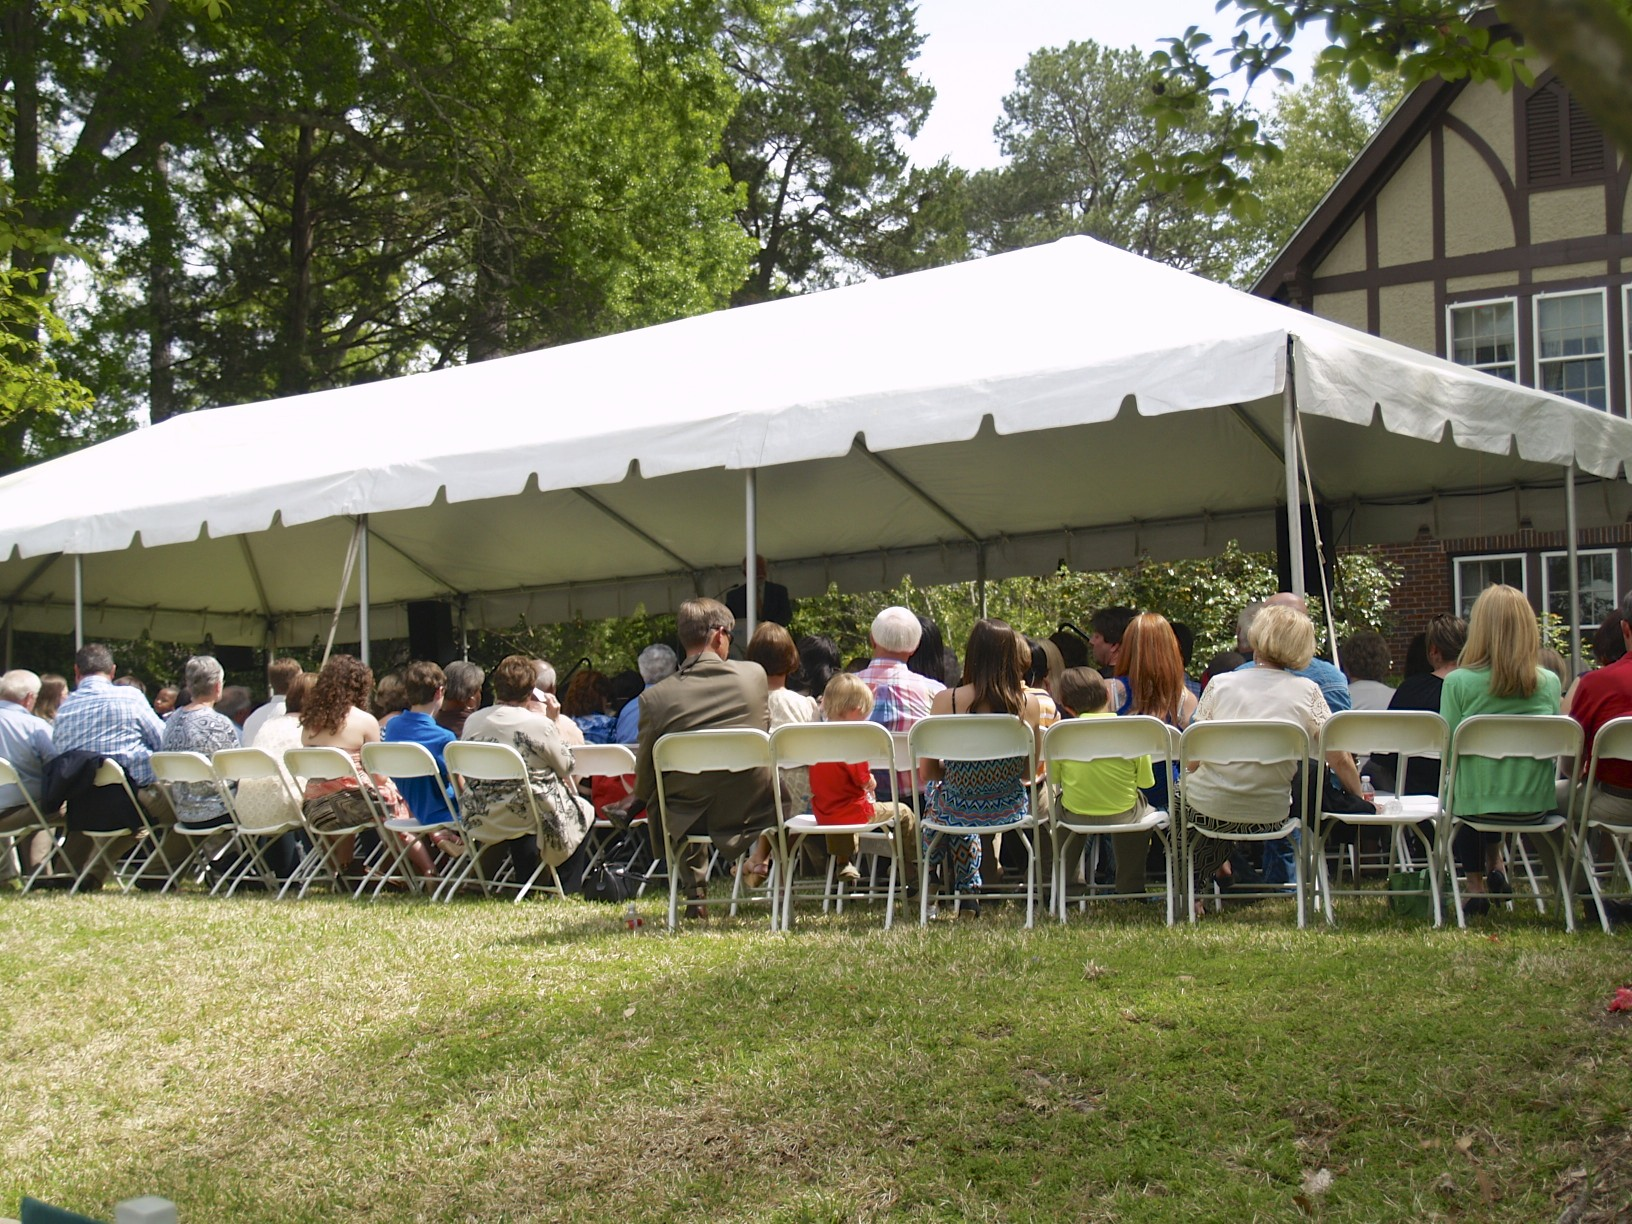 Scholastic Writing Awards Ceremony in the Eudora Welty garden